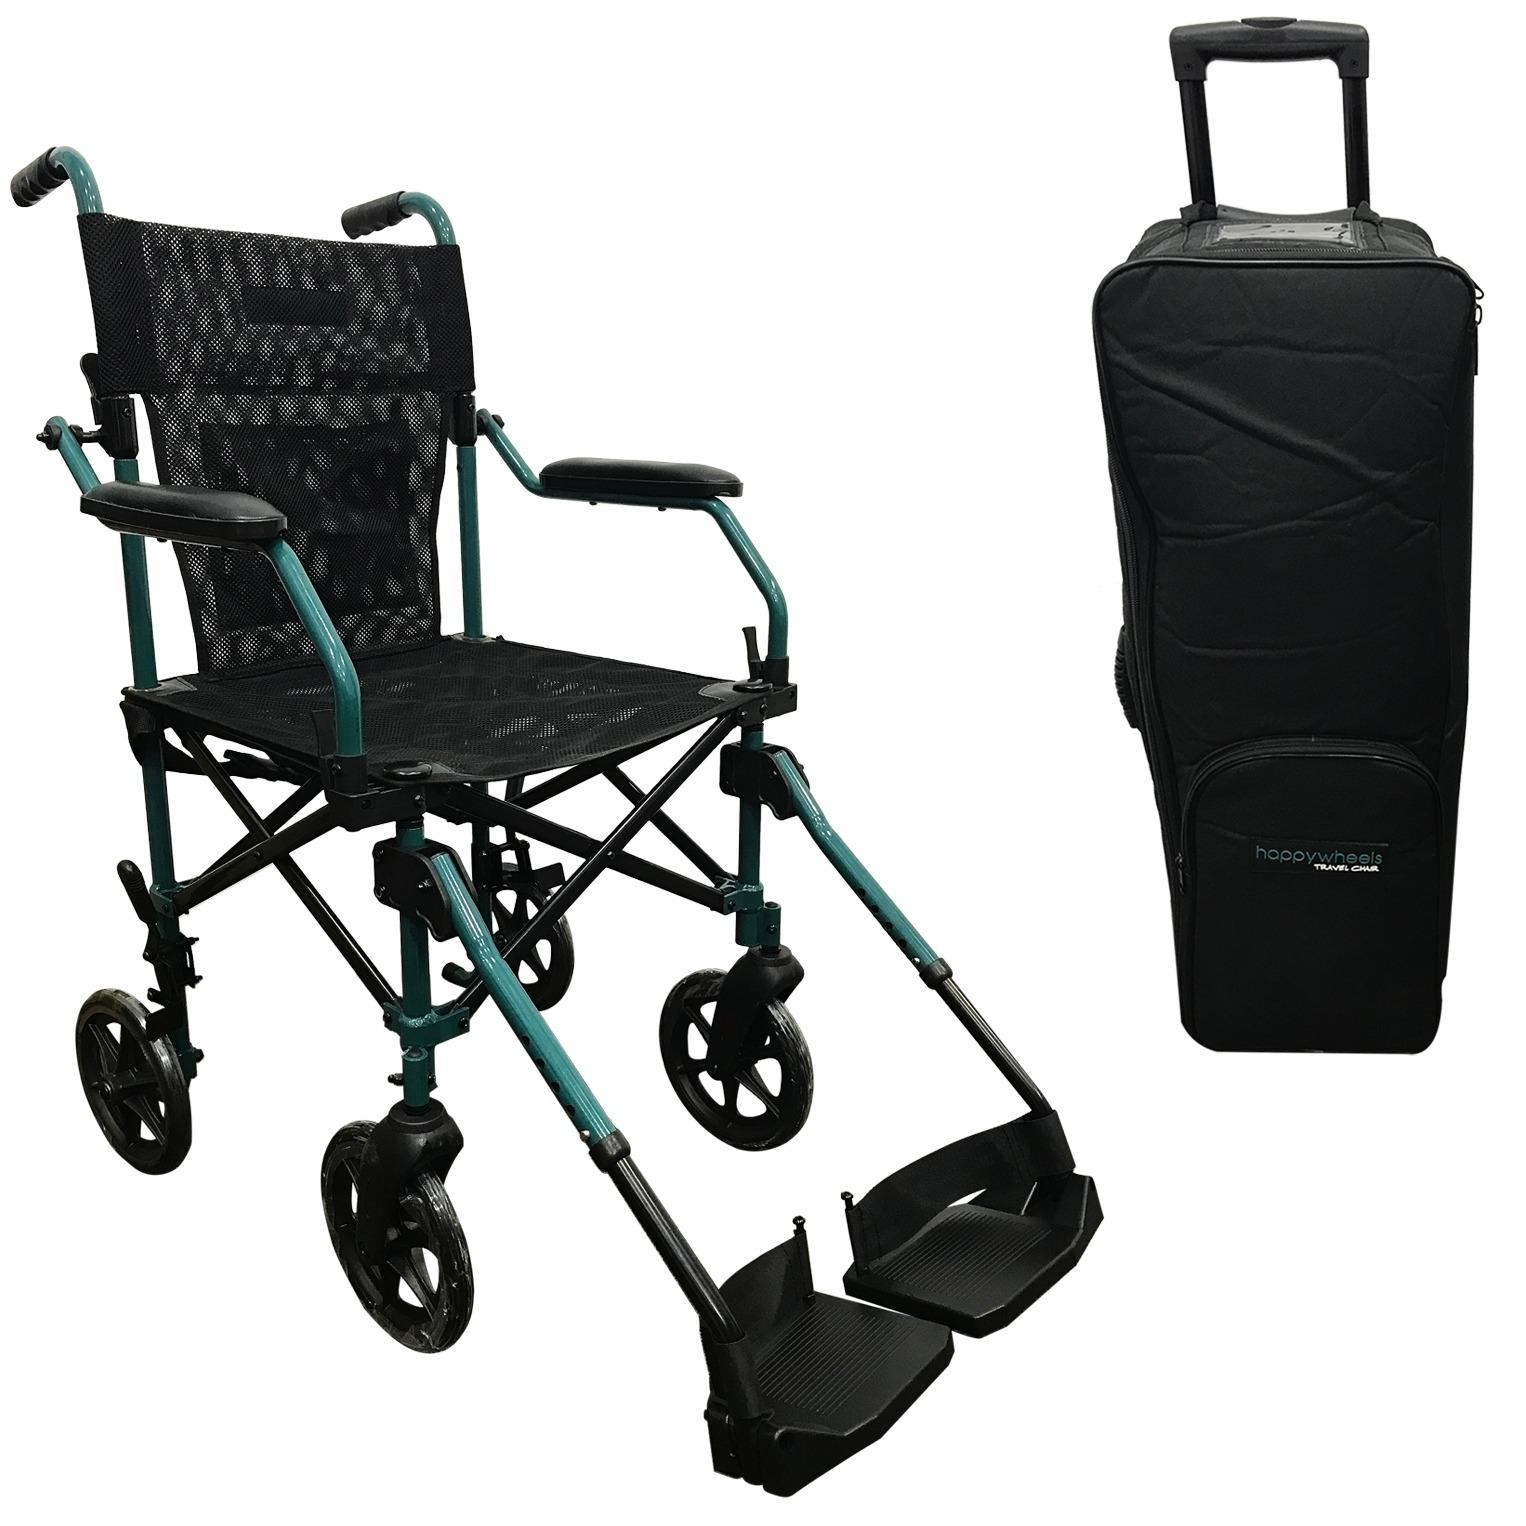 Top 10 Happywheels Travel Chair Lightweight Portable Foldable Transport Wheelchair With Trolley Bag